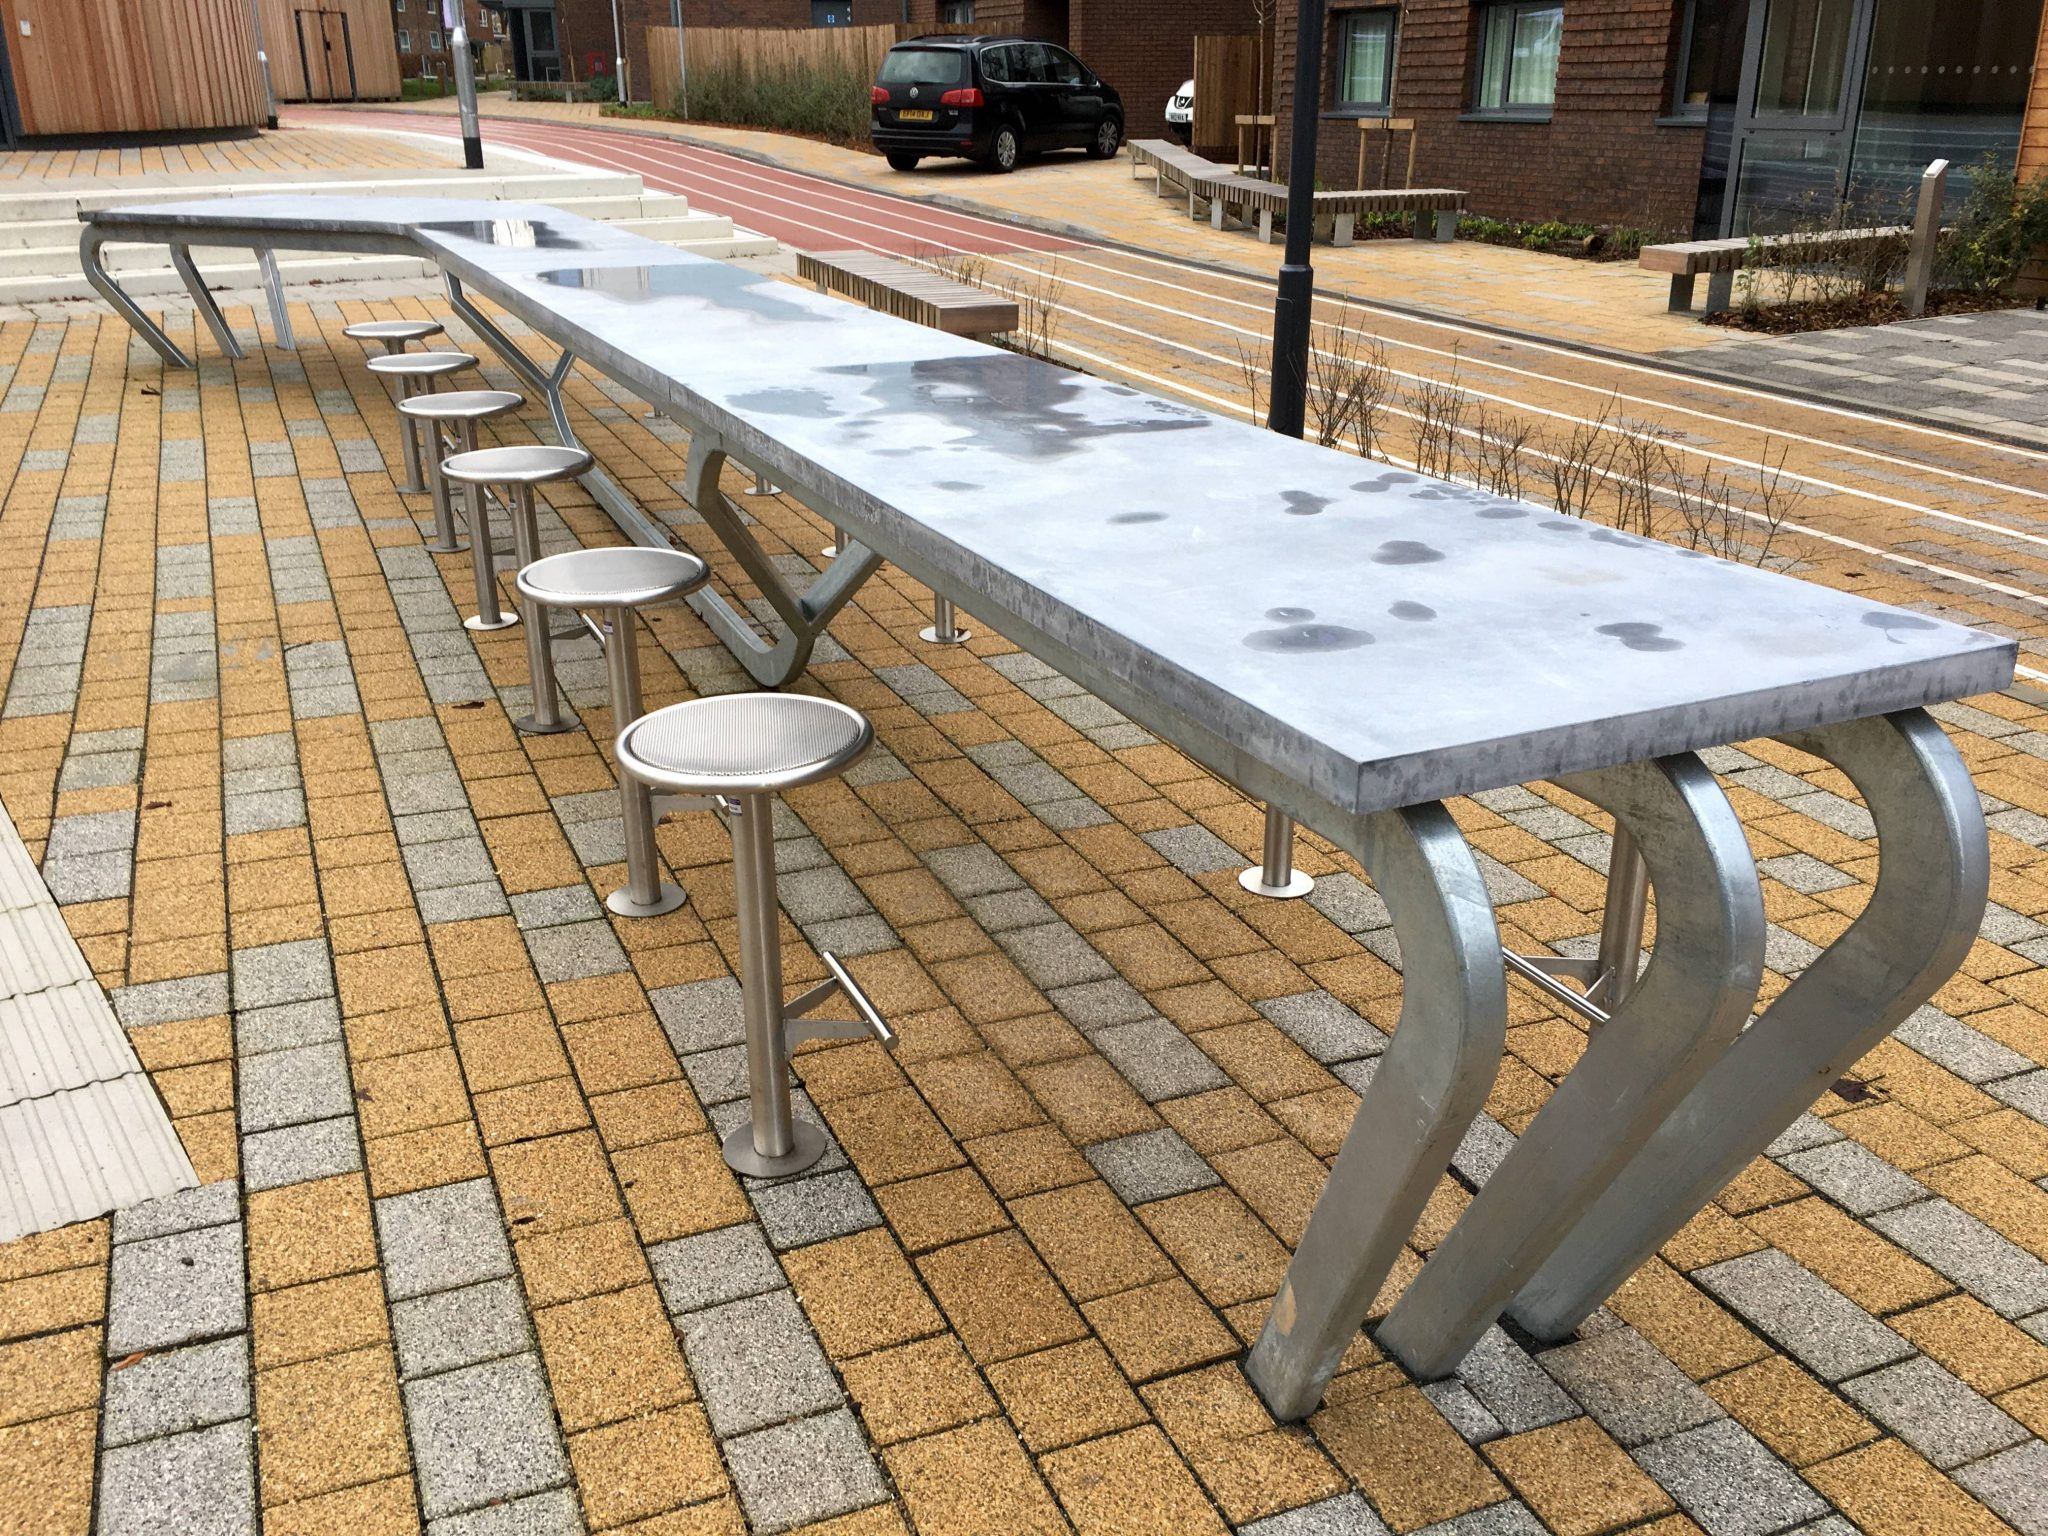 street furniture for Loughborough University